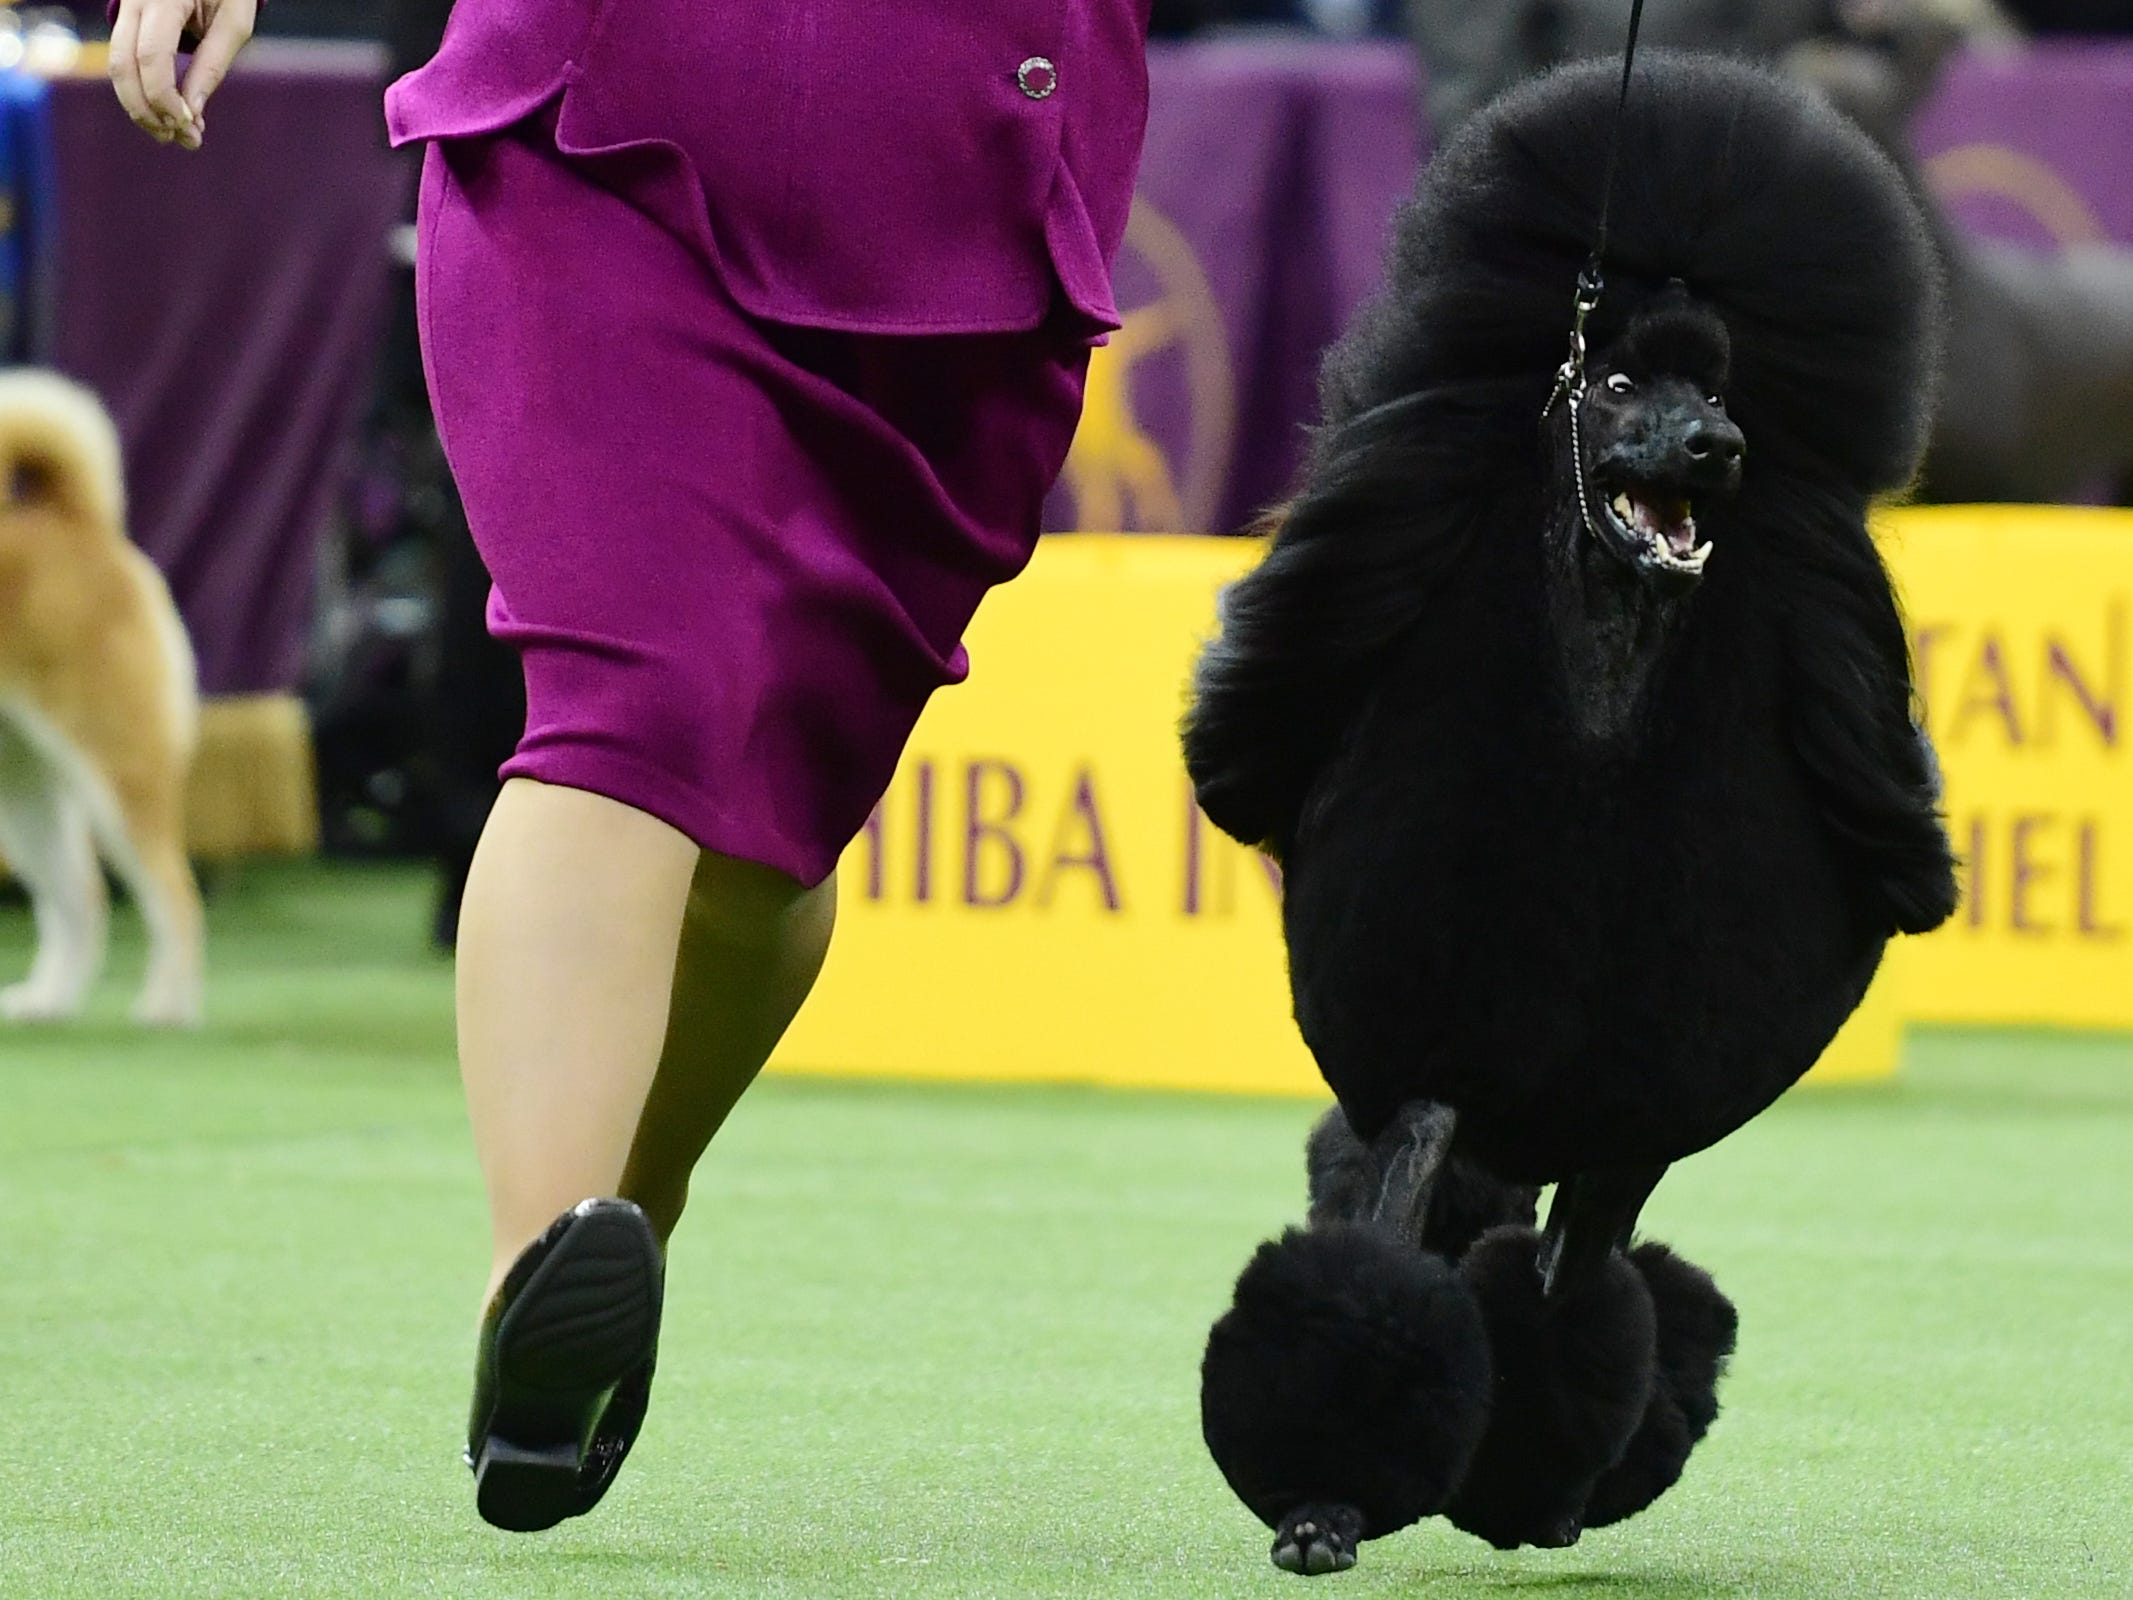 The Standard Poodle and trainer compete during the Non-Sporting Group judging at the 143rd Westminster Kennel Club Dog Show at Madison Square Garden.